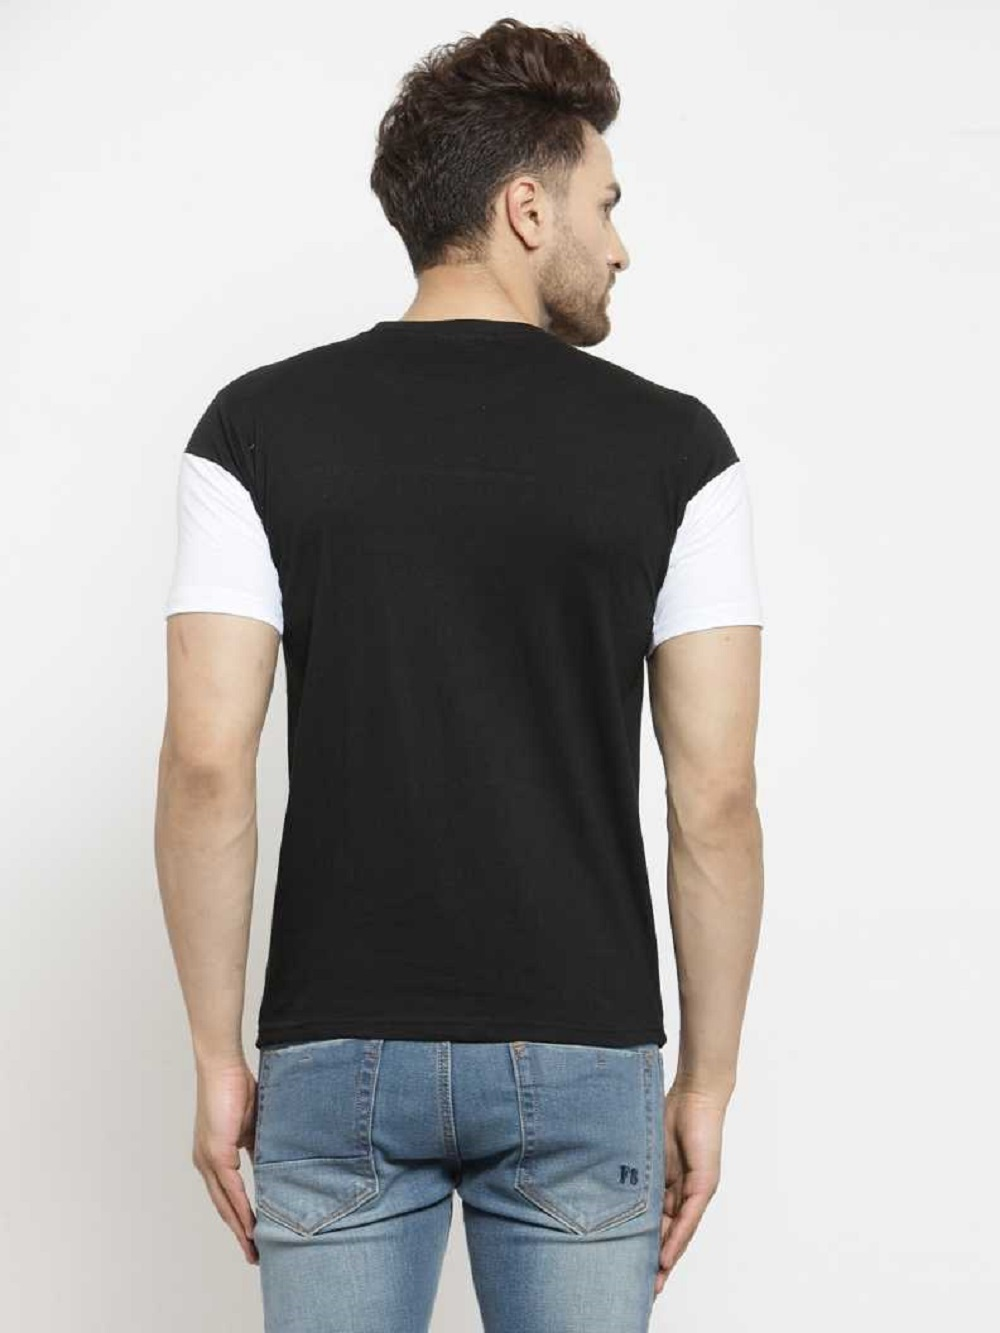 Leotude Black Cotton Round Neck T-shirt for Men